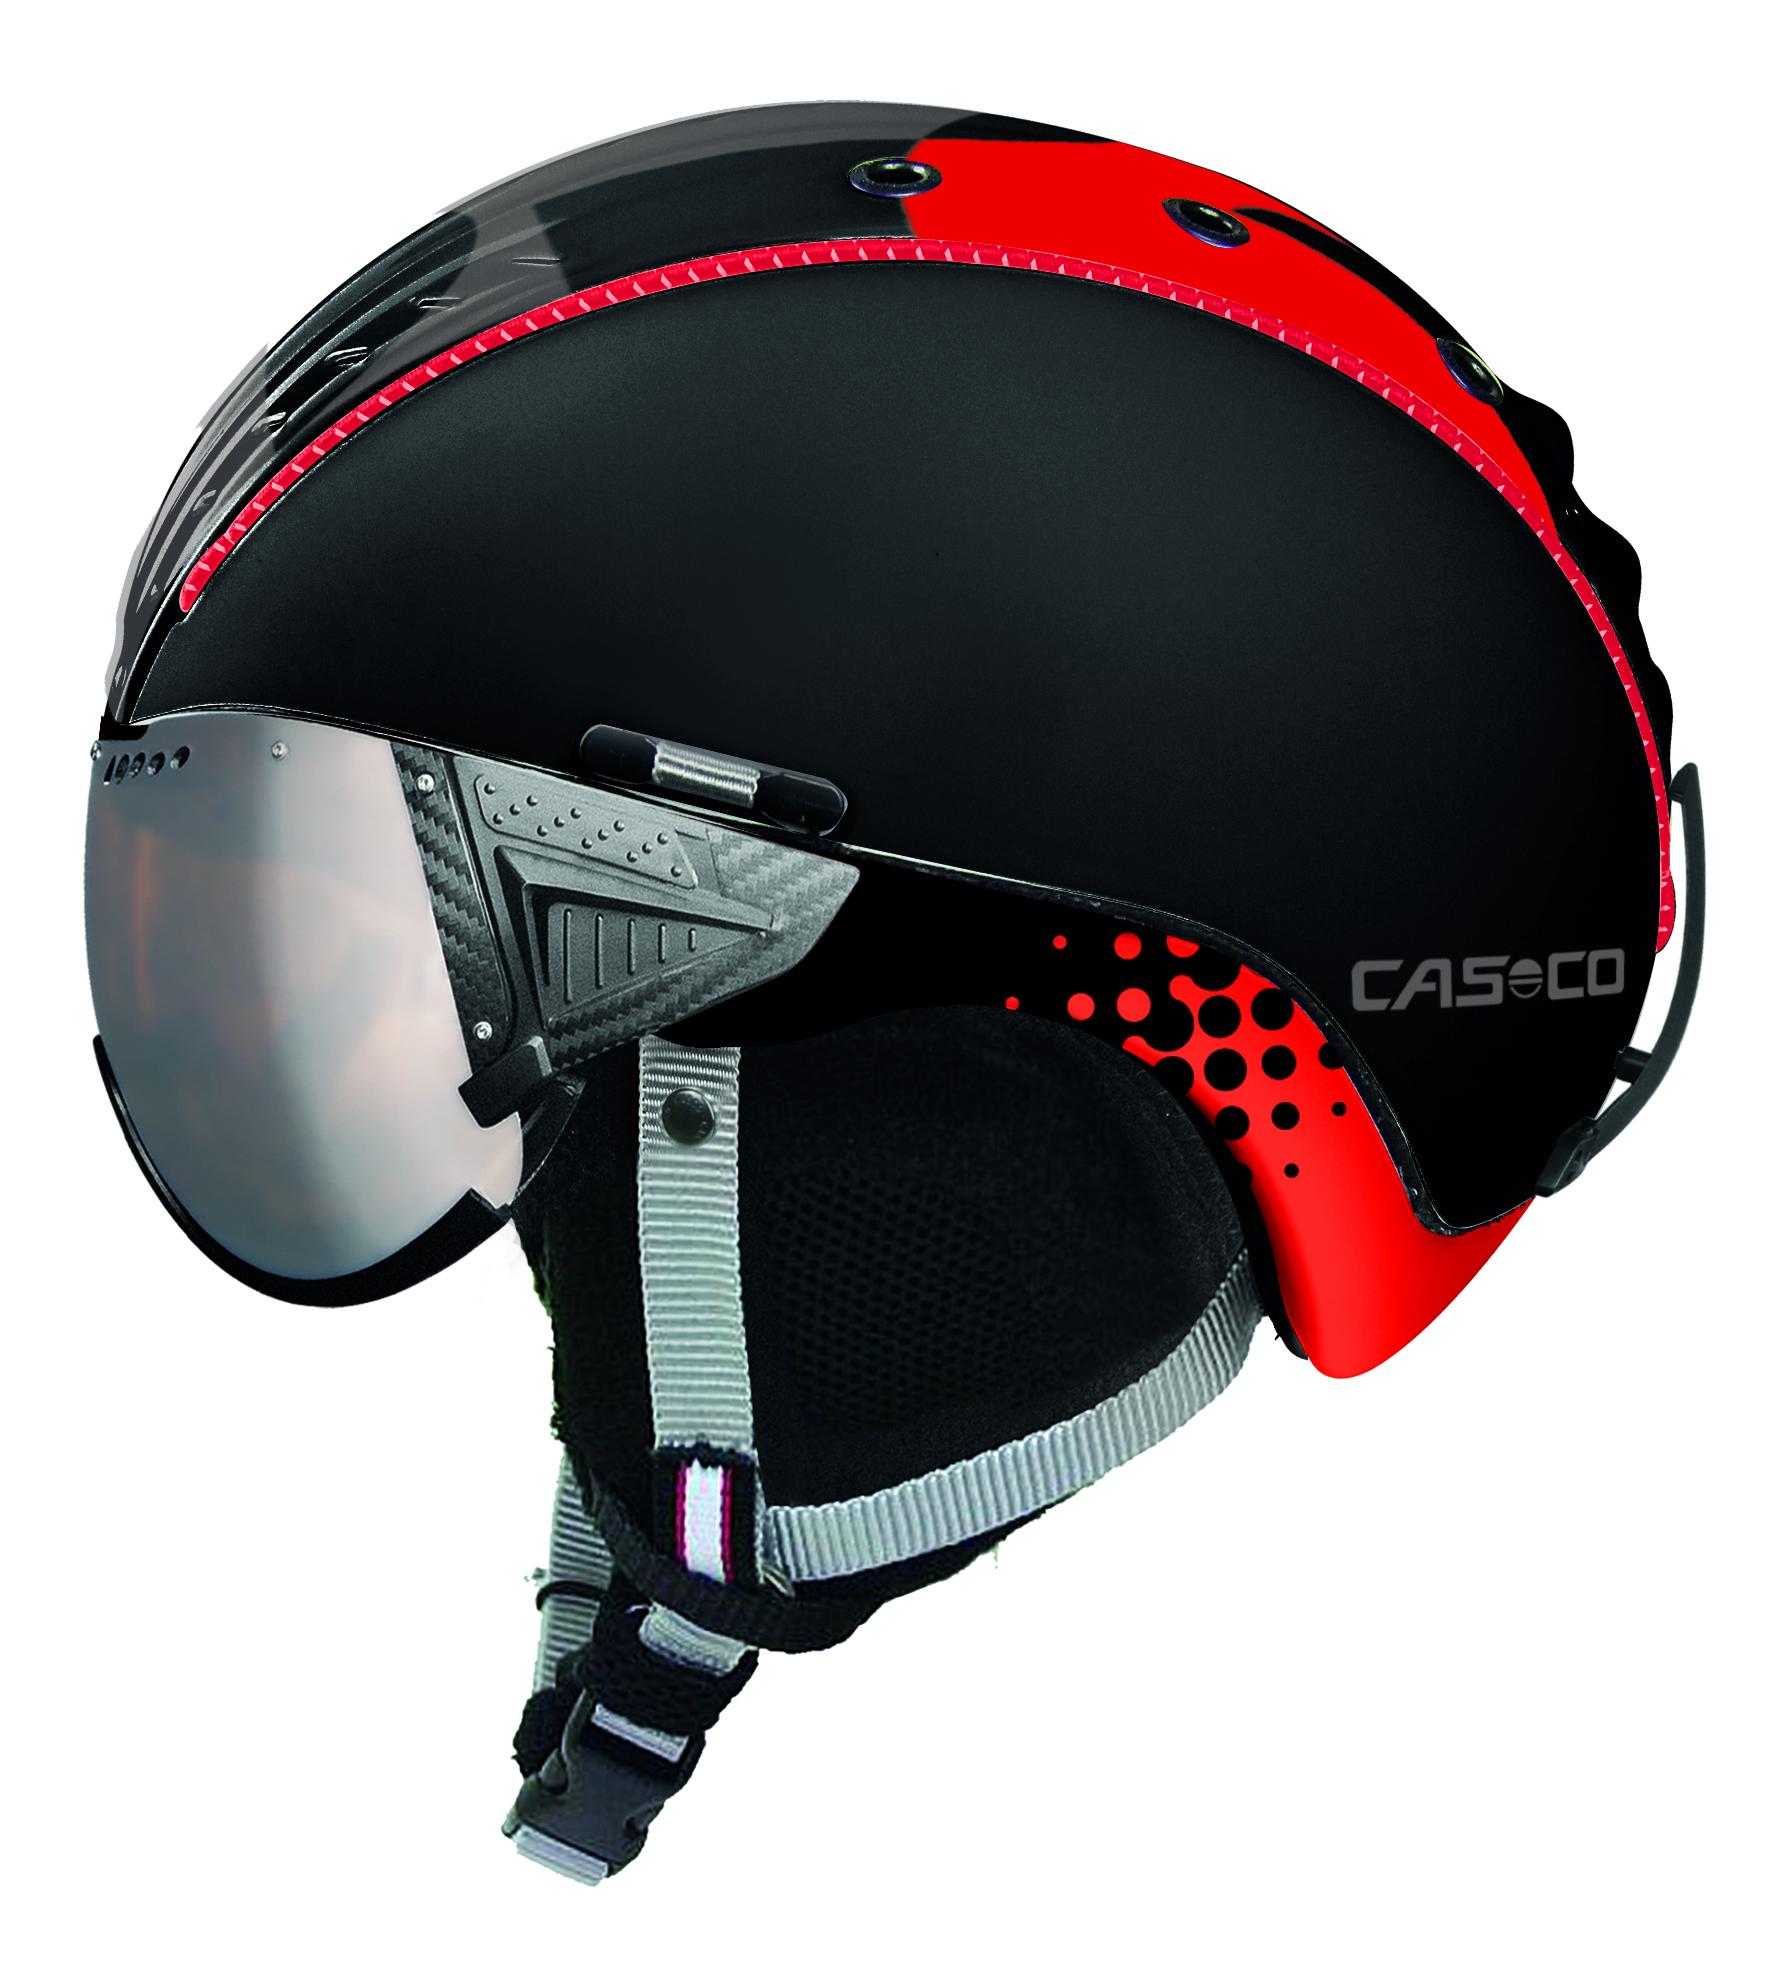 CASCO SP2 Visor Helm